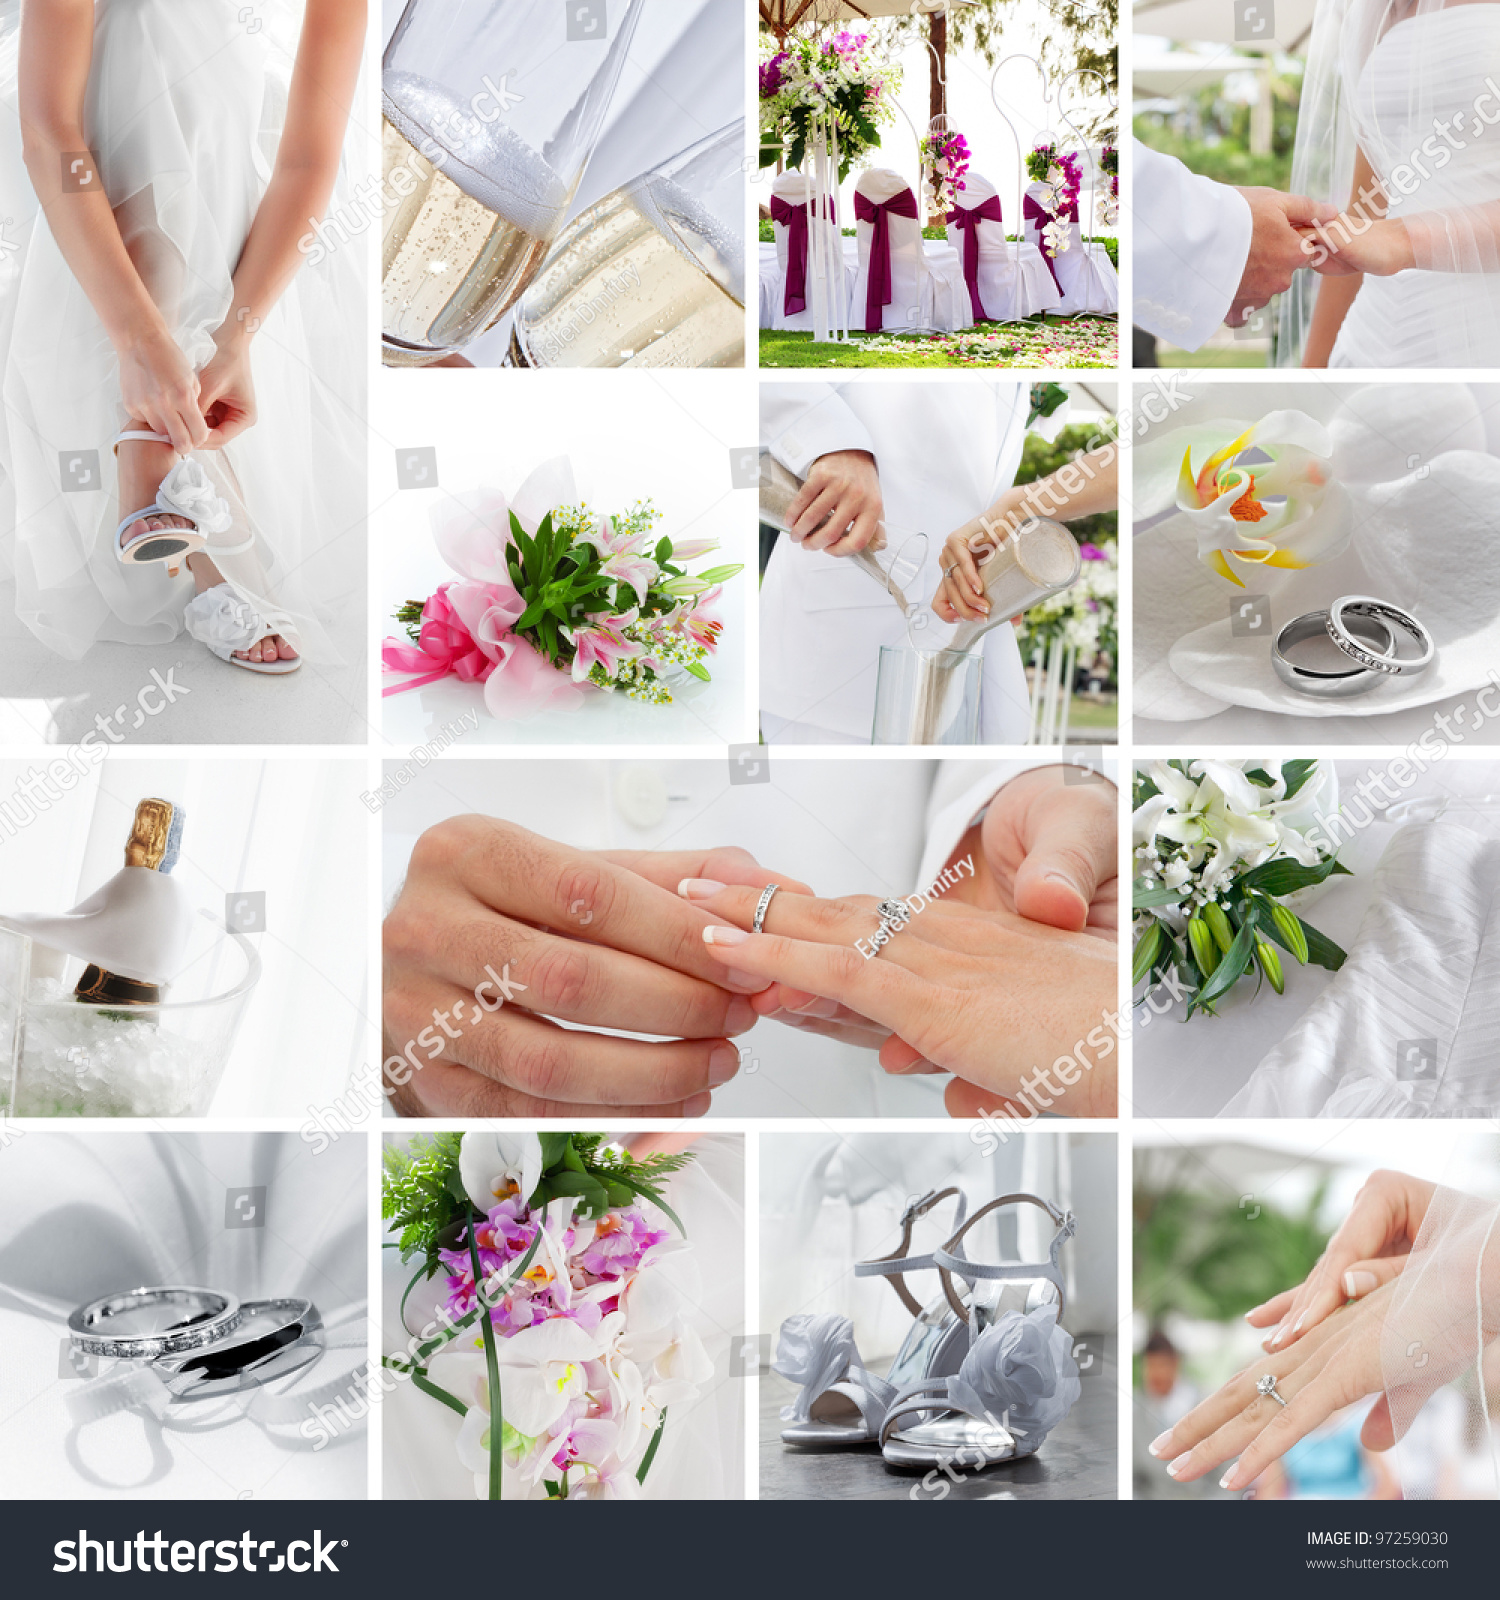 Wedding Theme Collage Composed Different Images Stock Photo (Royalty ...